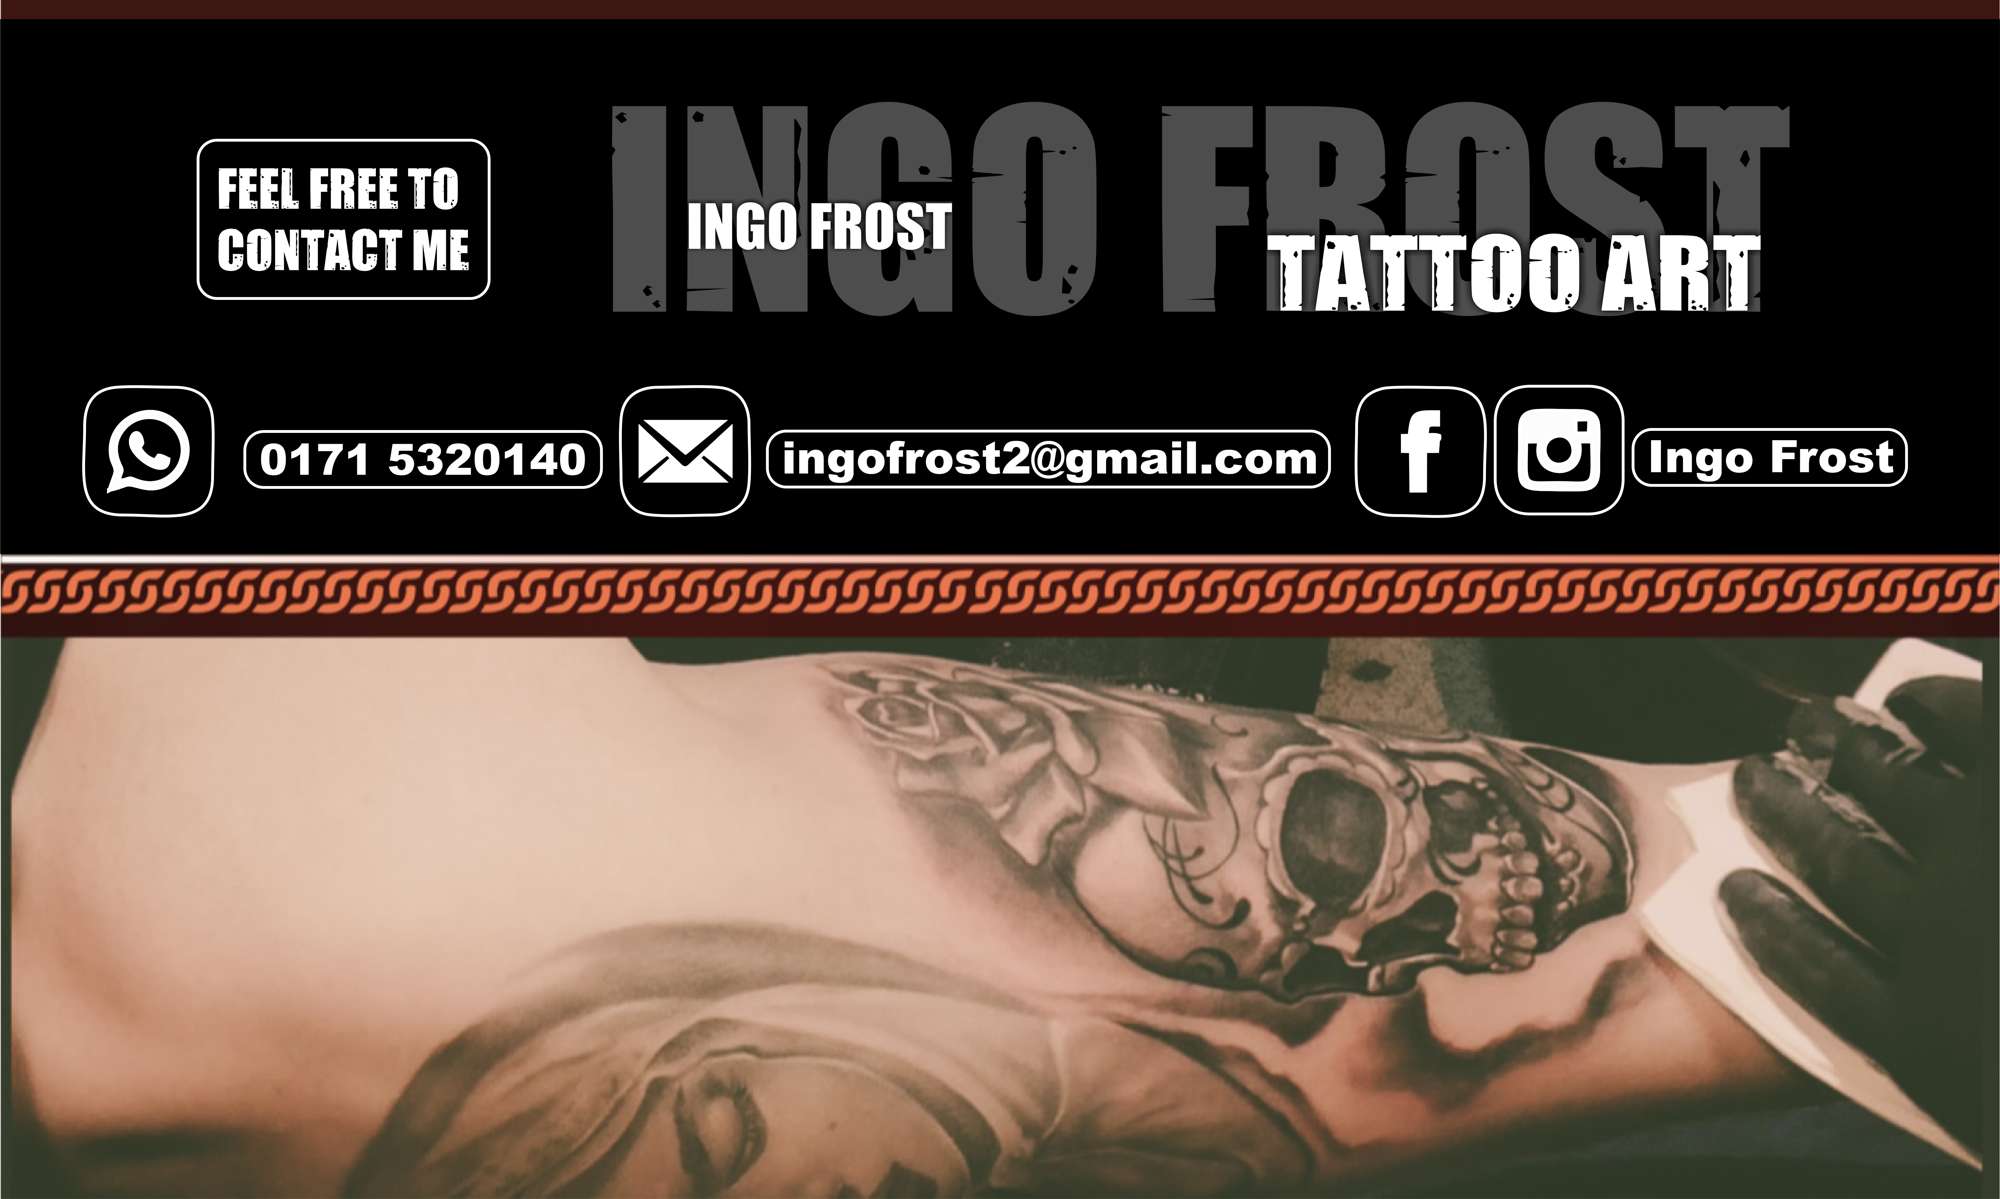 INGO FROST TATTOO ART